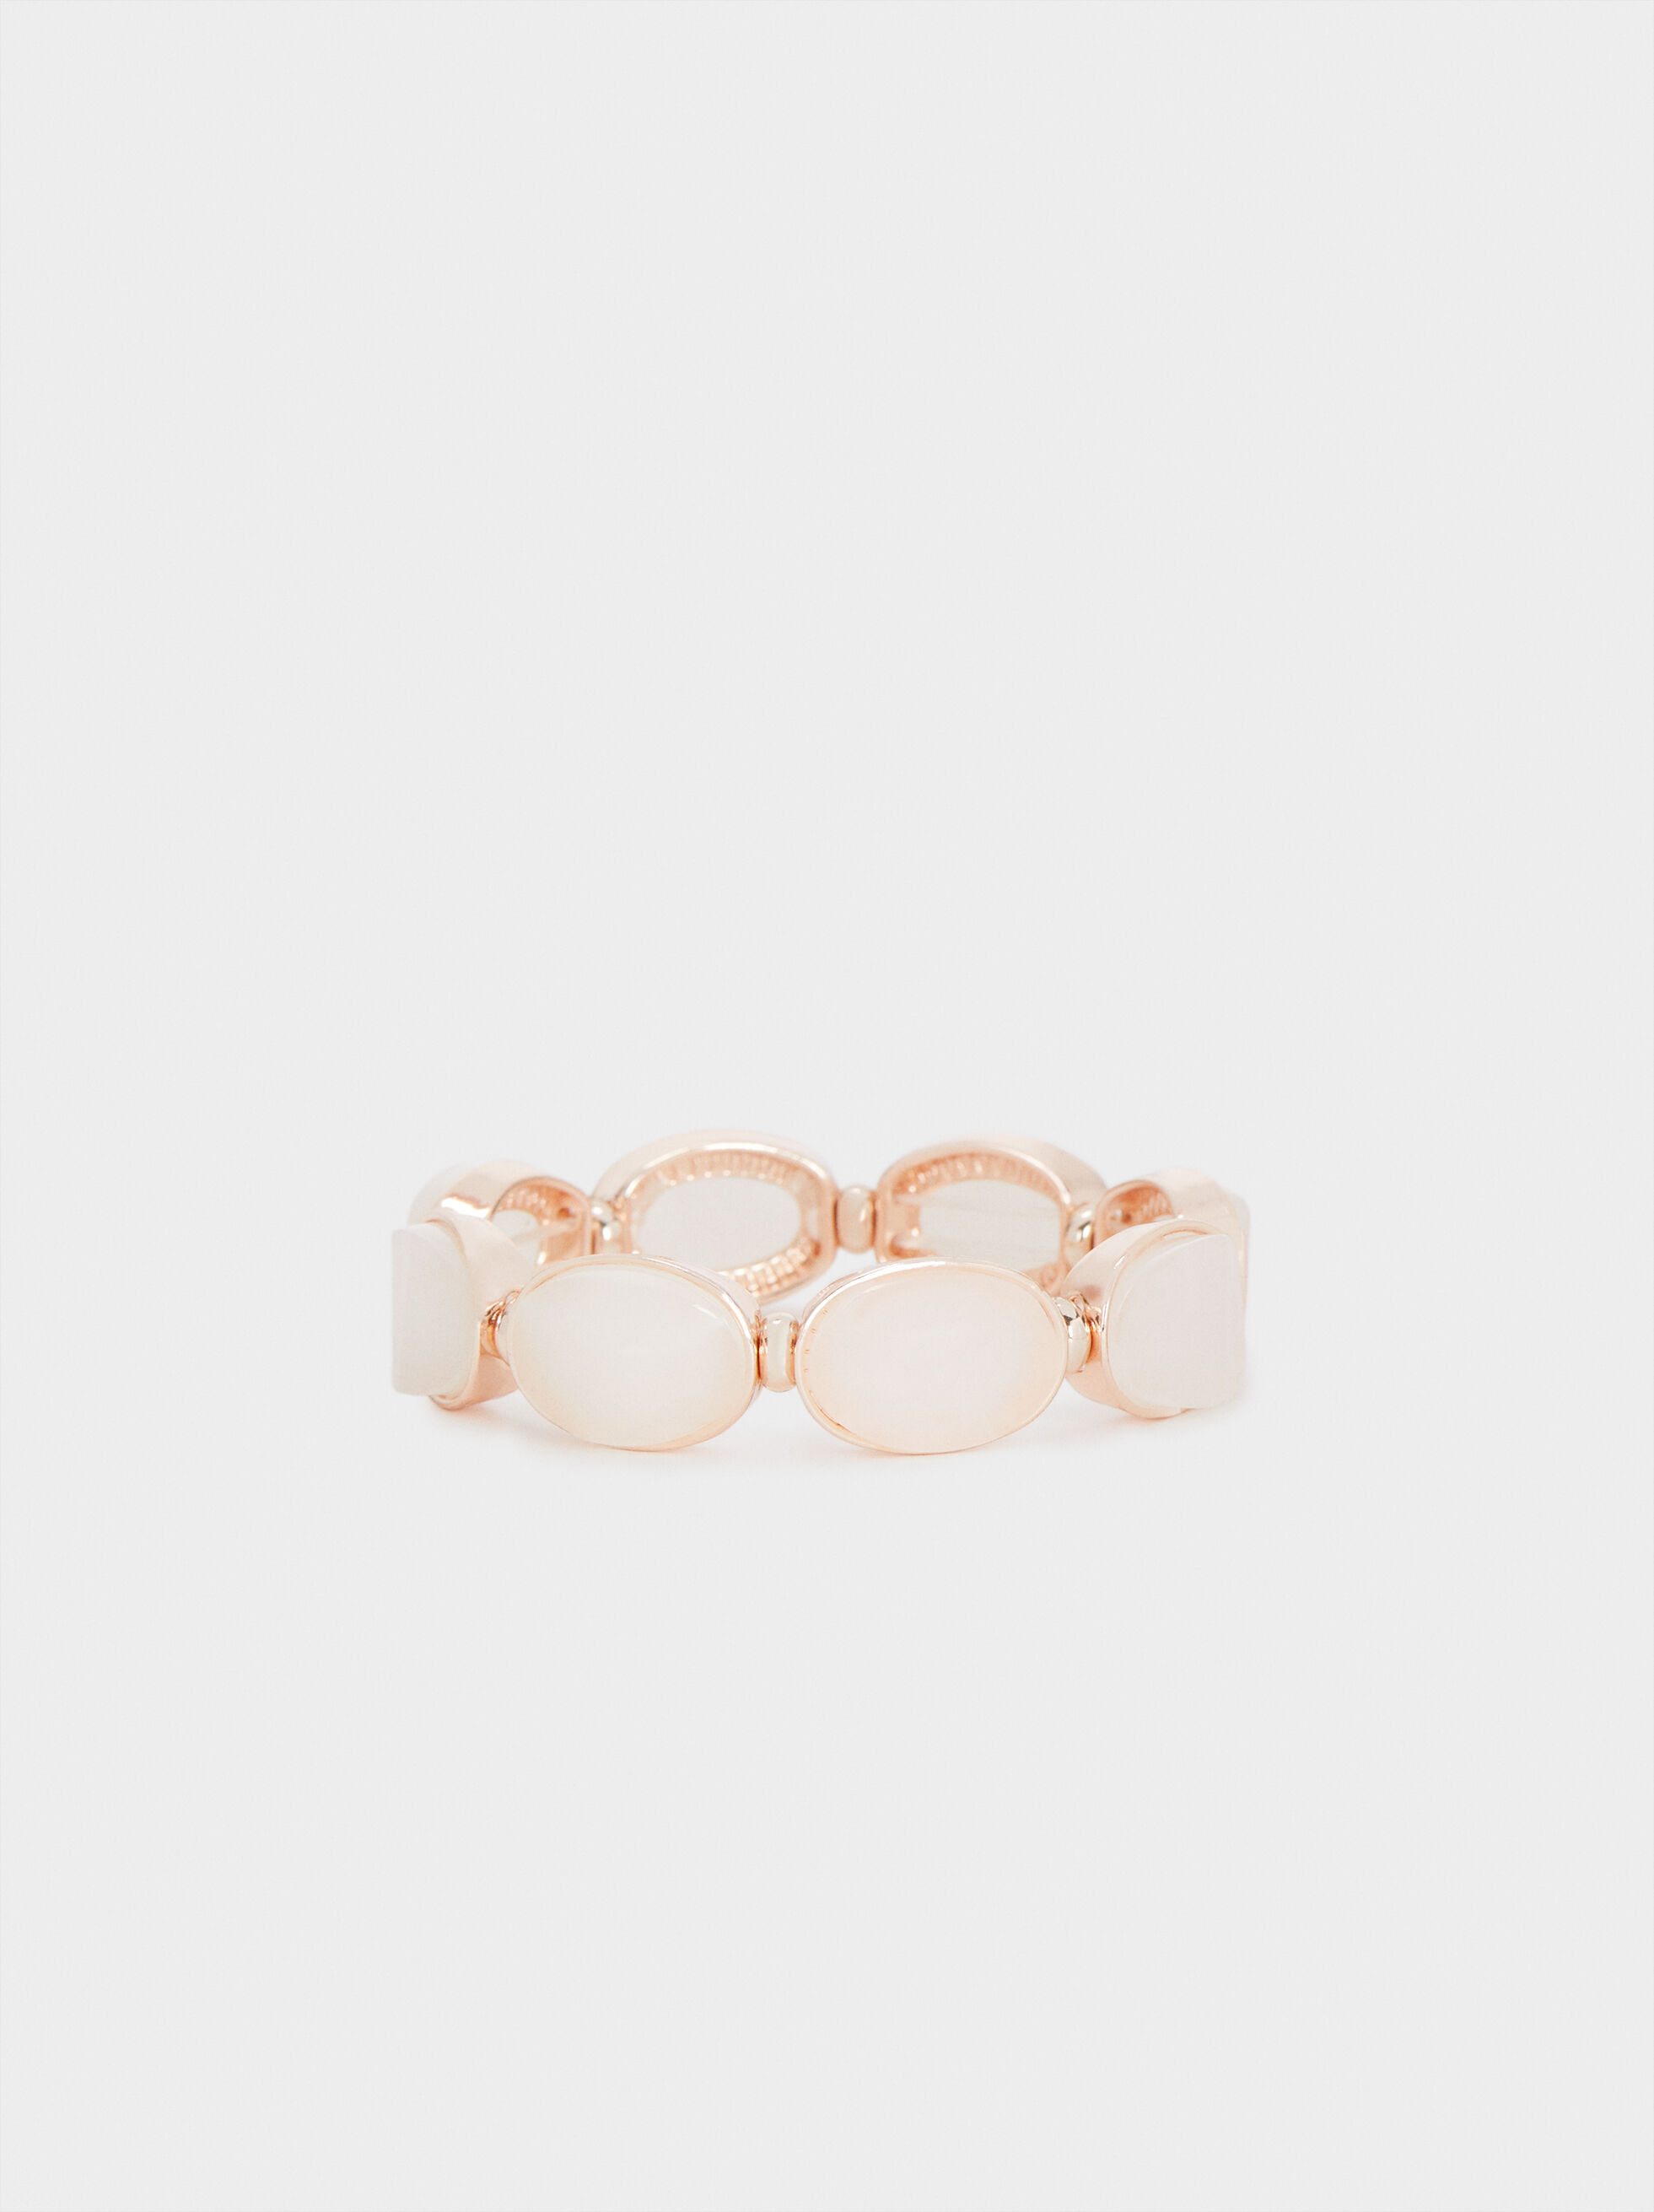 Elastic Rose Gold Resin Bracelet, Orange, hi-res